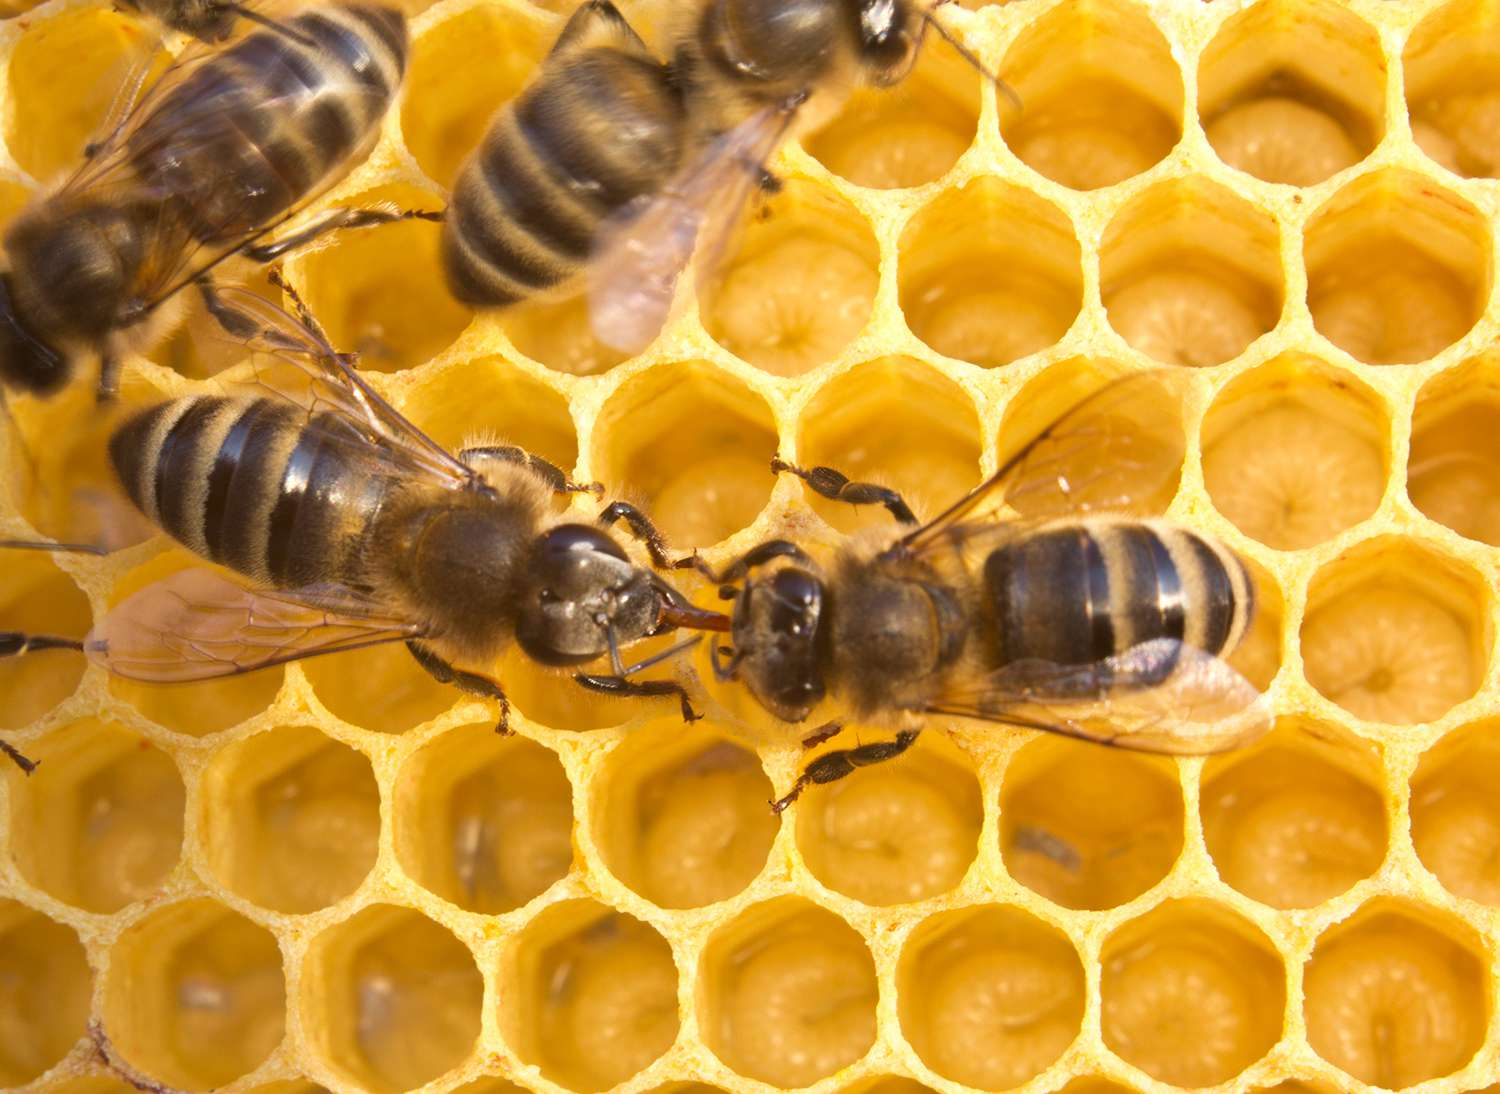 Bees share information, pass each other nectar.